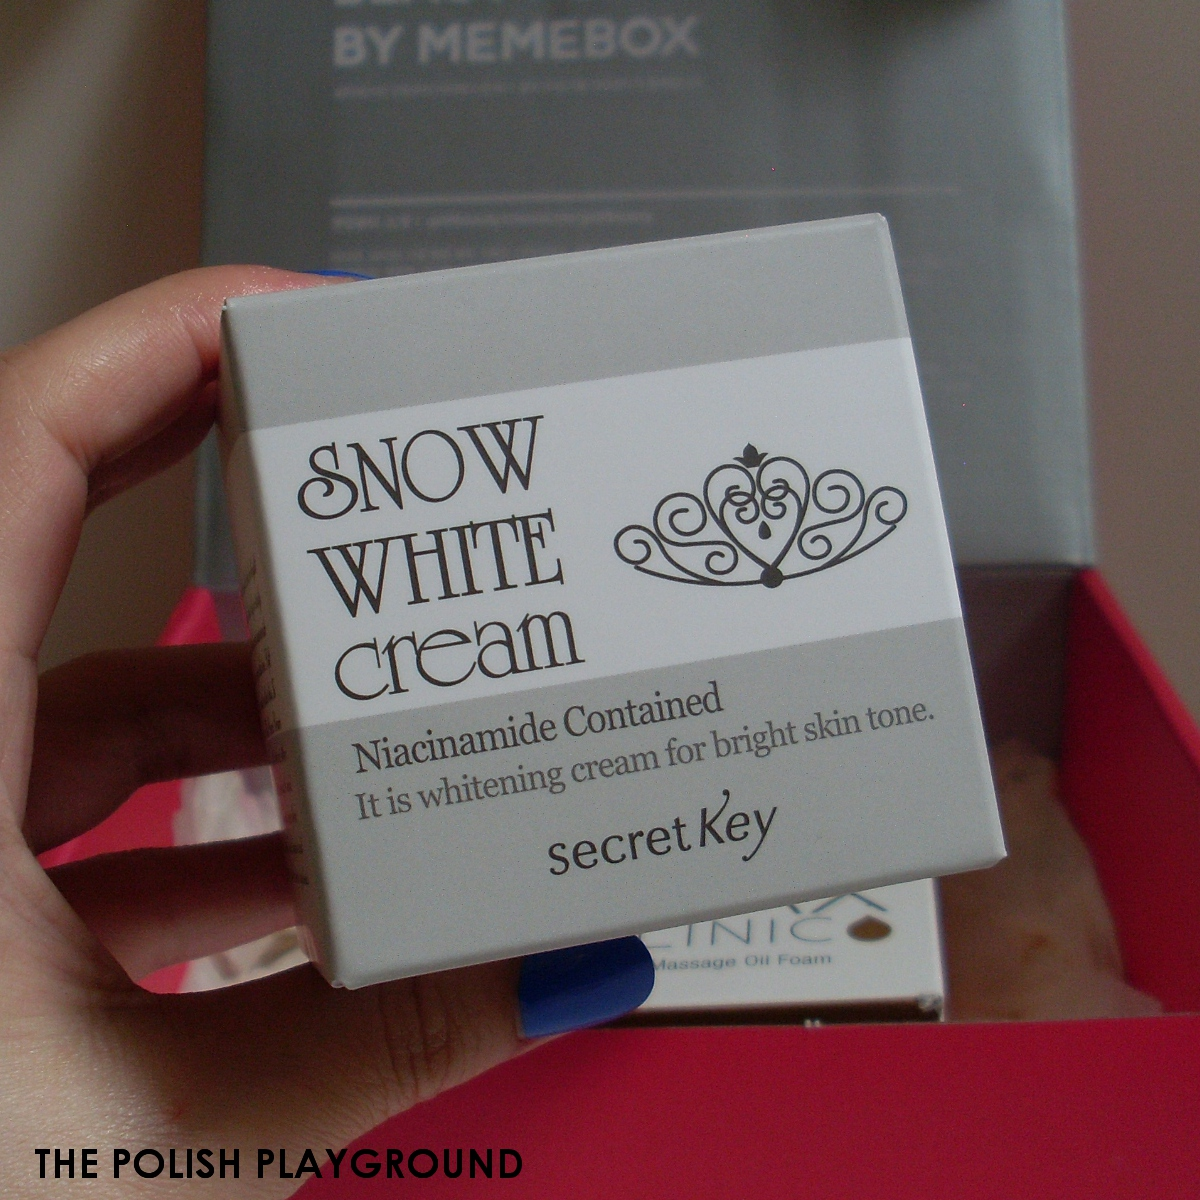 Memebox #8 Unboxing - Secret Key Snow White Cream